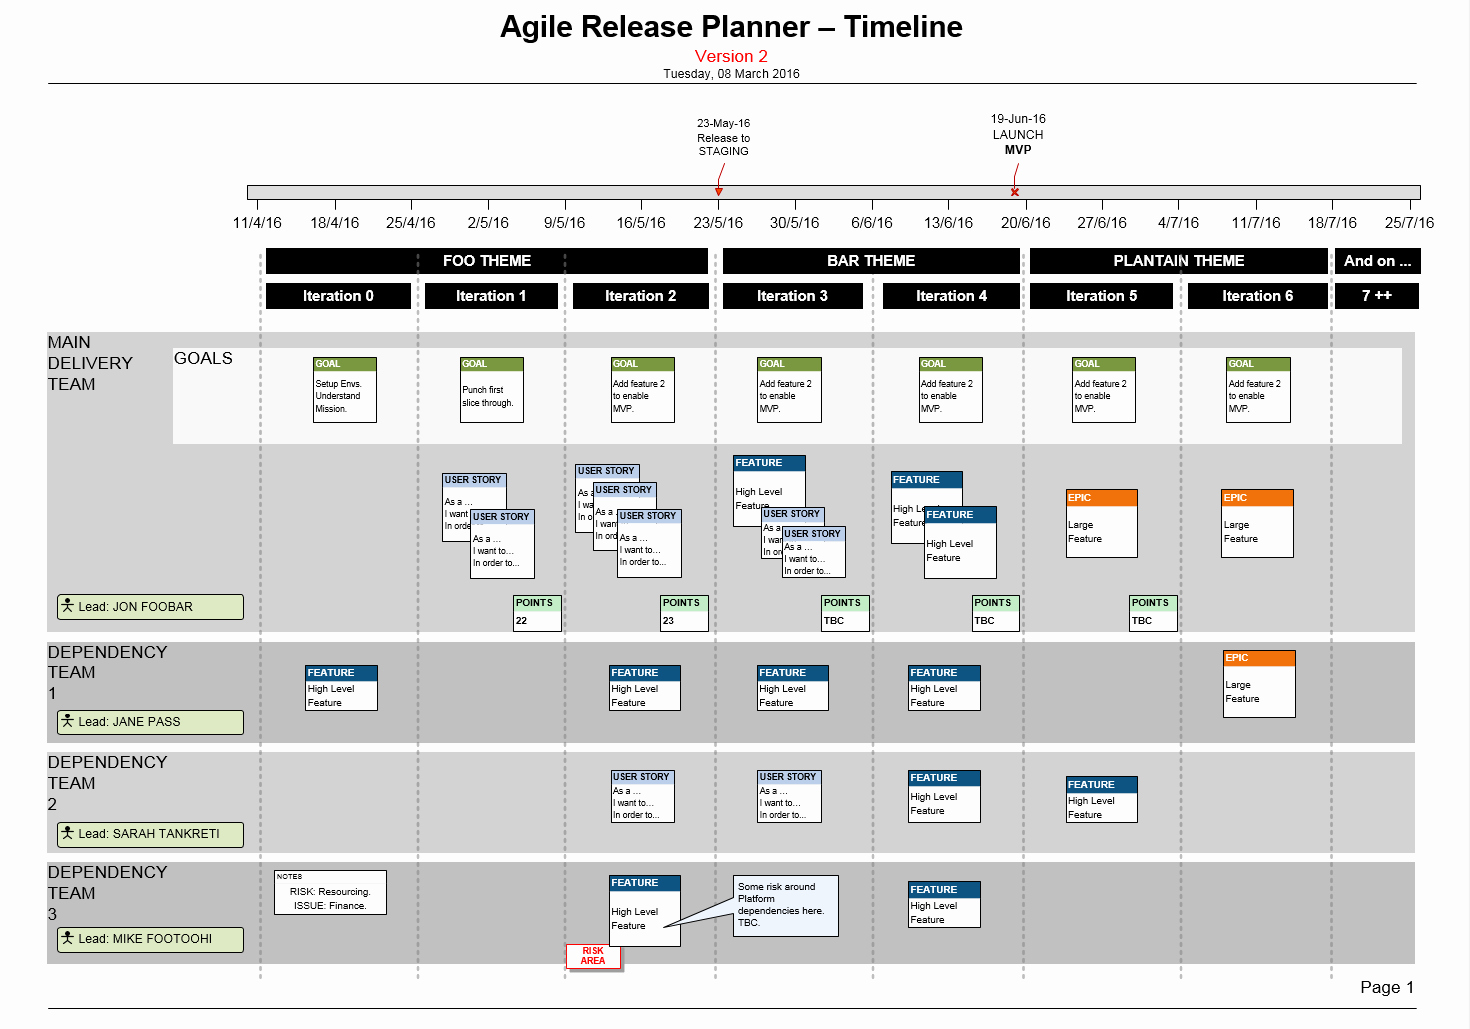 Agile Project Plan Template Fresh Visio Agile Release Plan for Scrum Teams Story Mapping